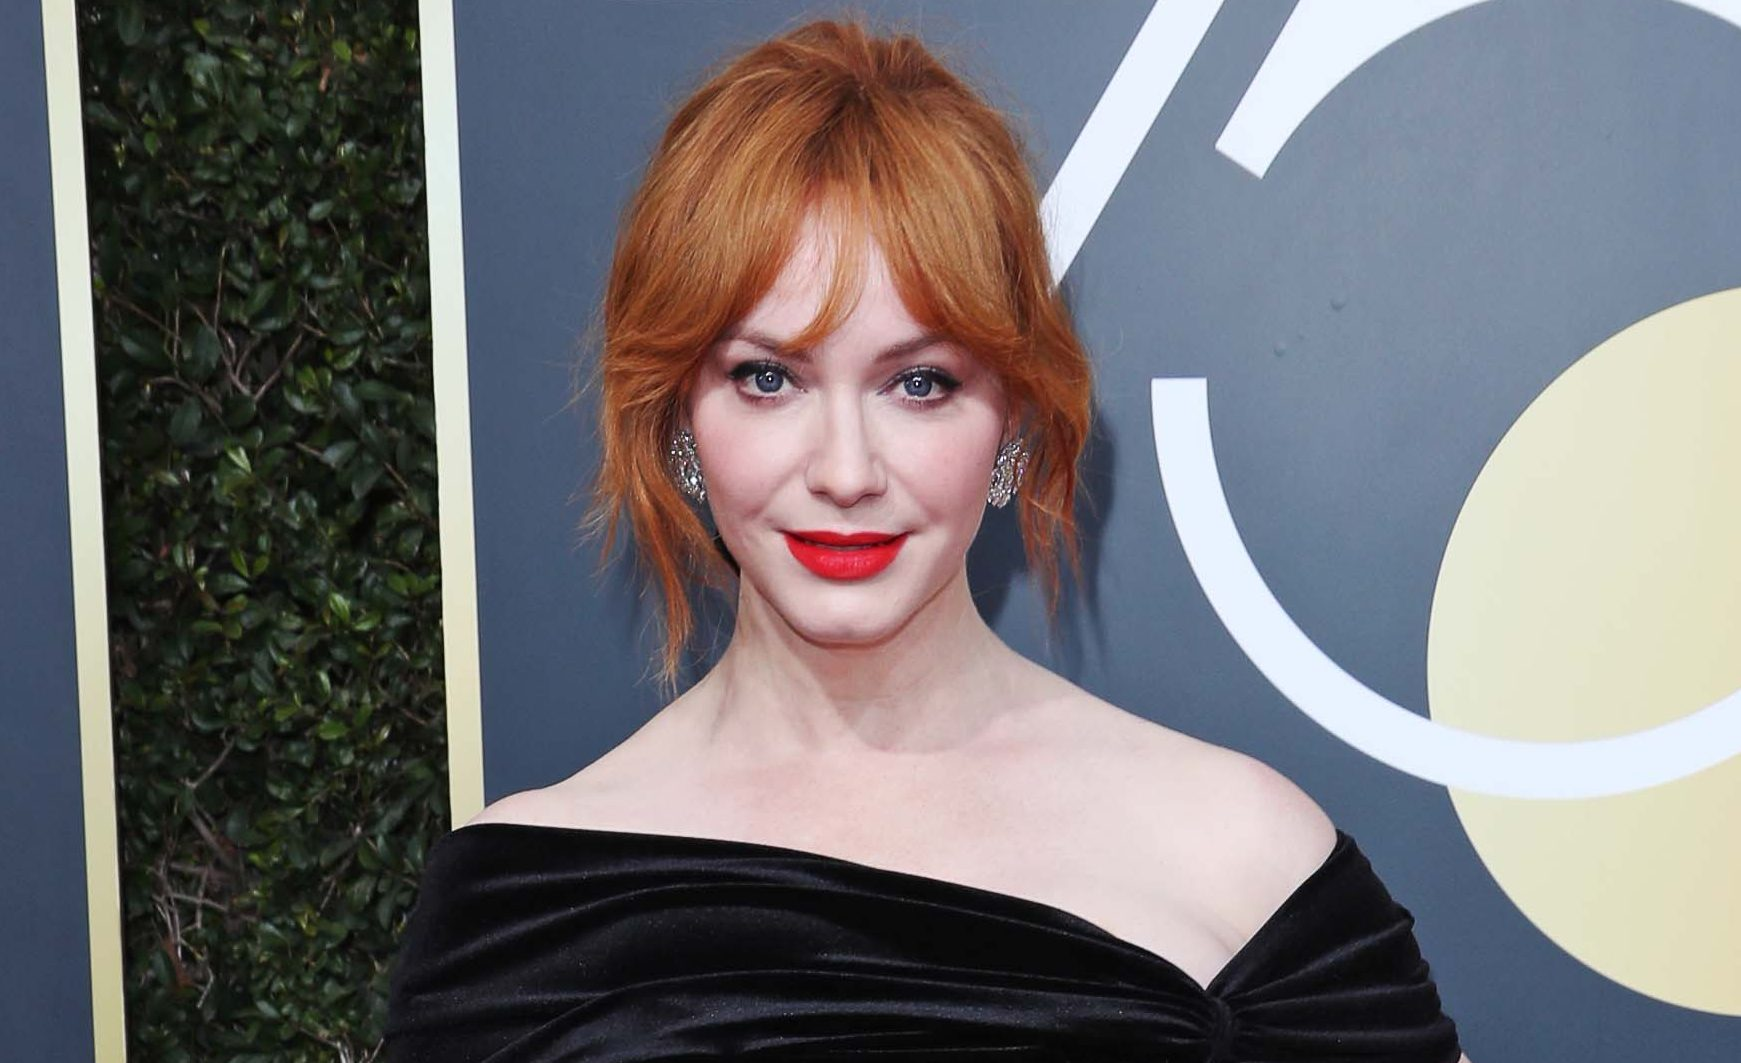 Christina Hendricks Reveals It's Her Hand on the 'American Beauty' Poster